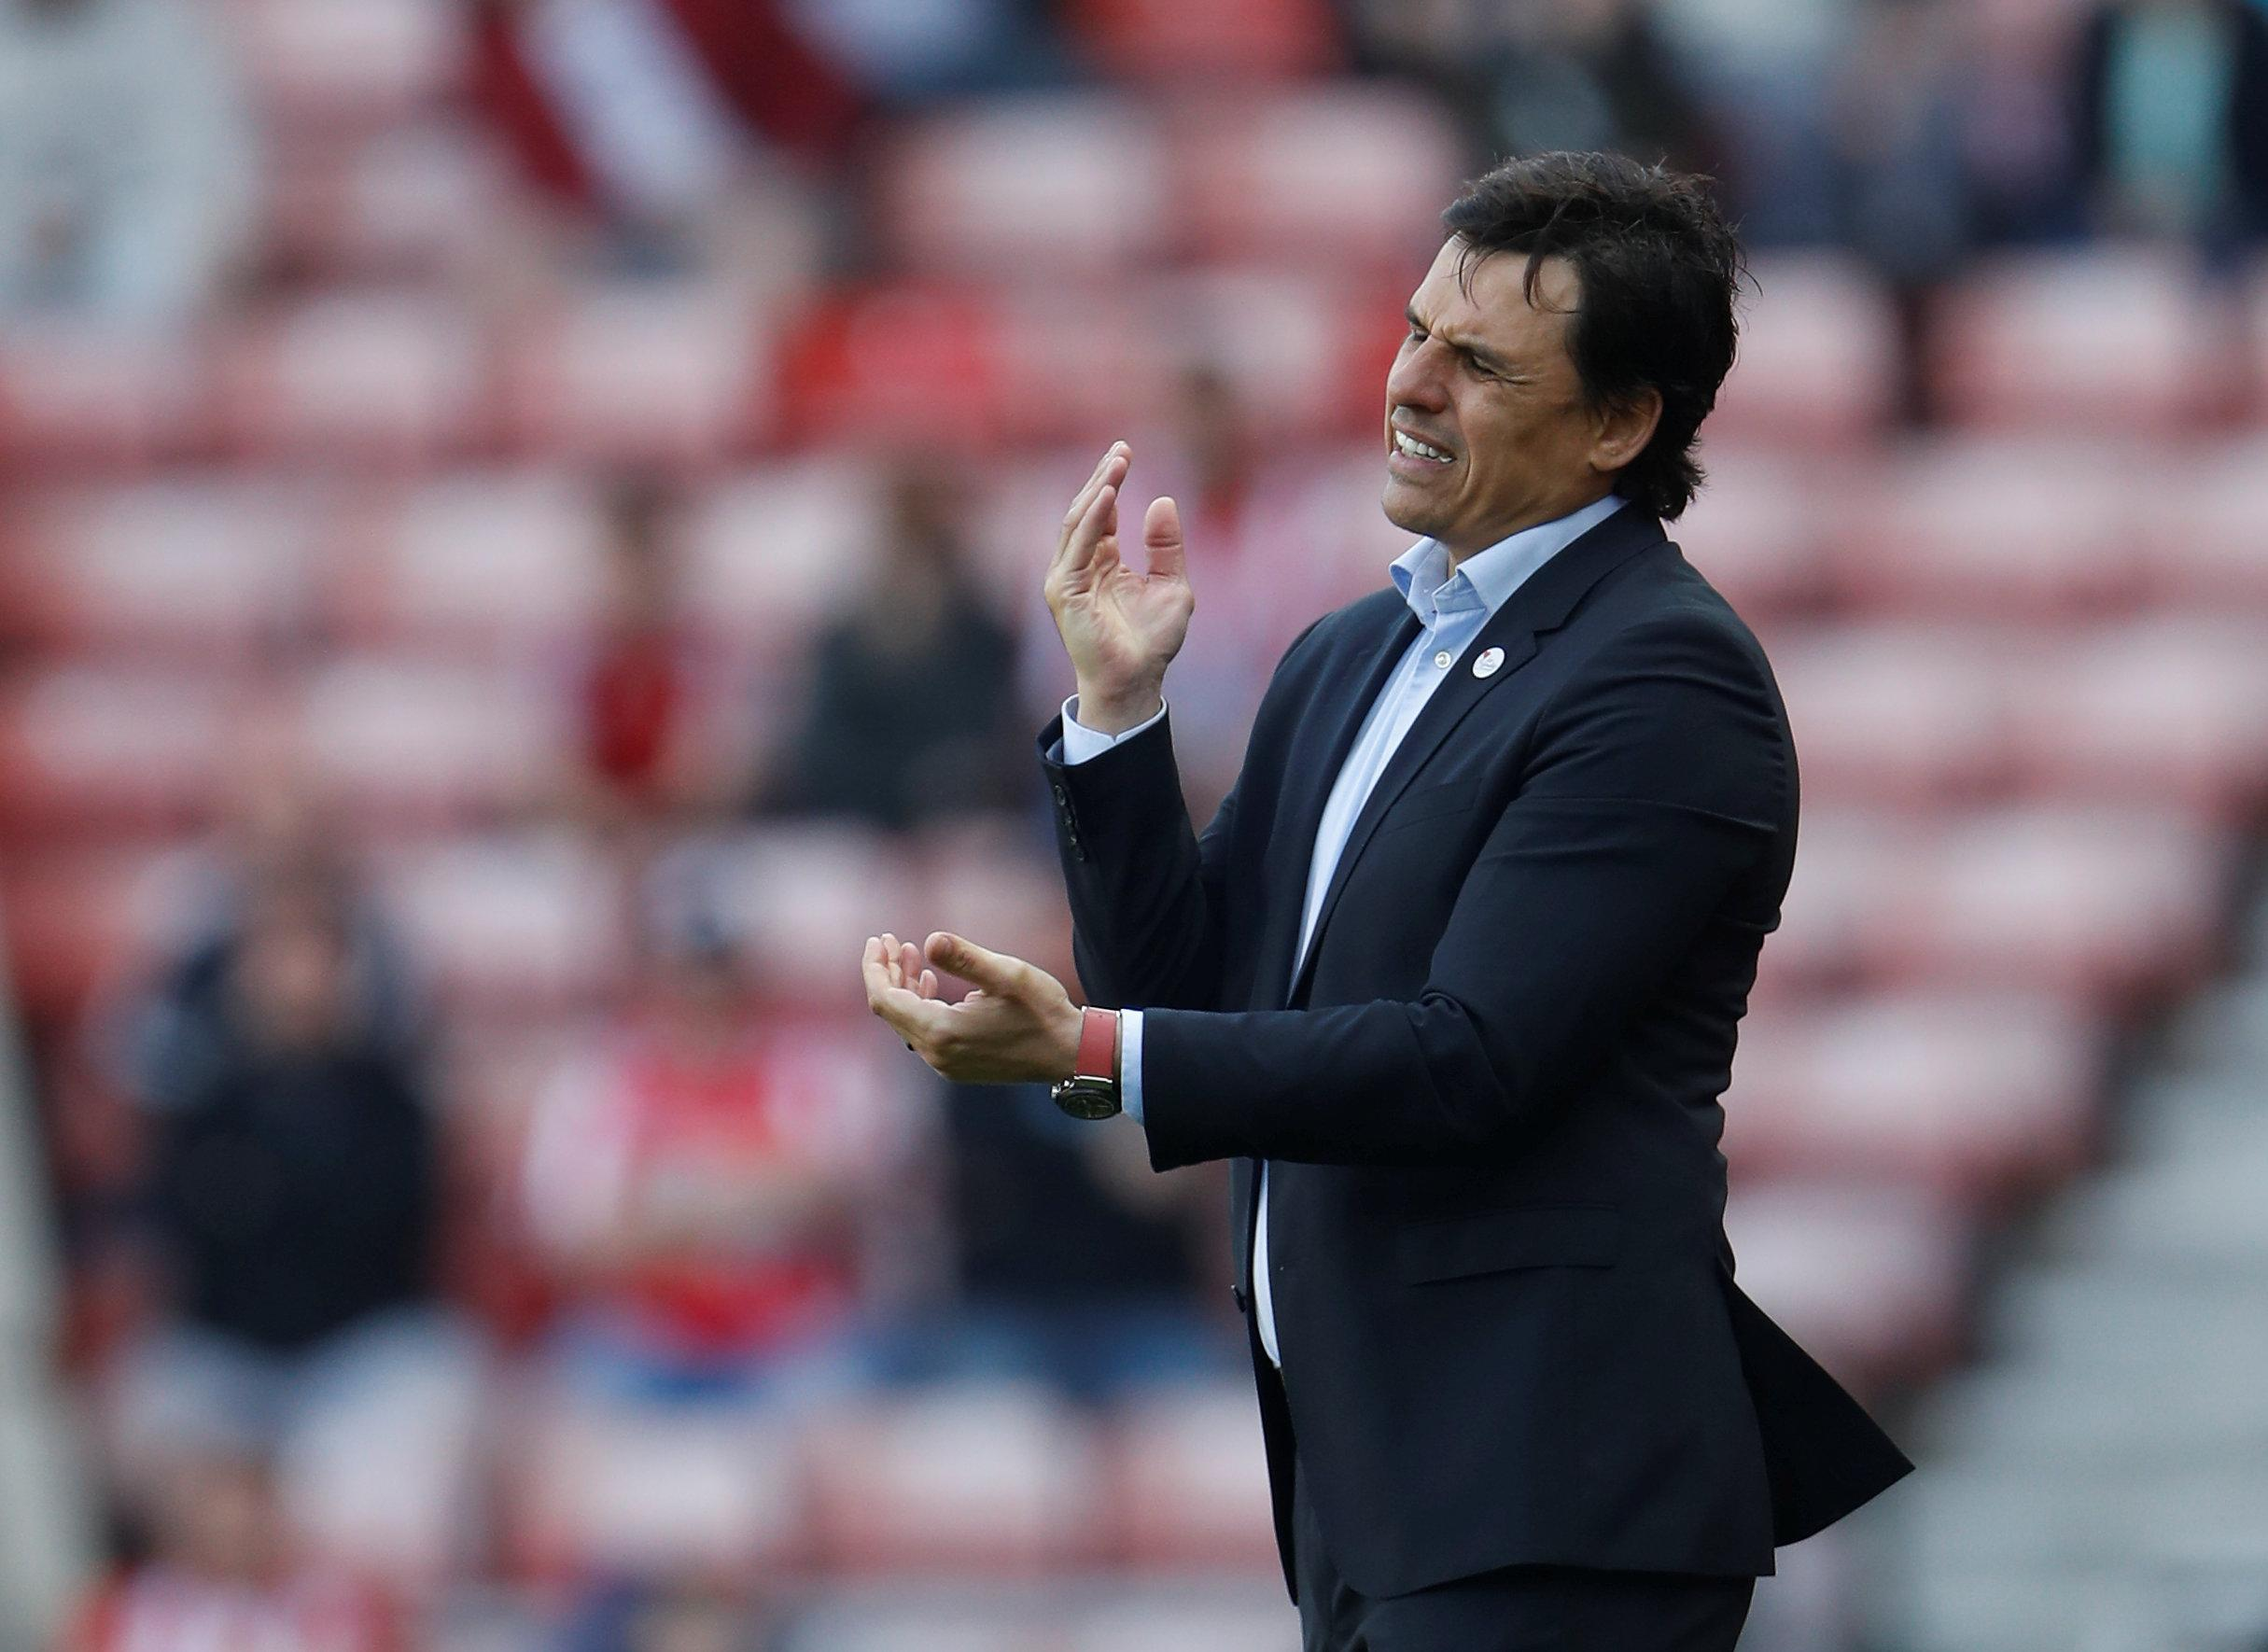 Coleman suffered a tough spell at Sunderland